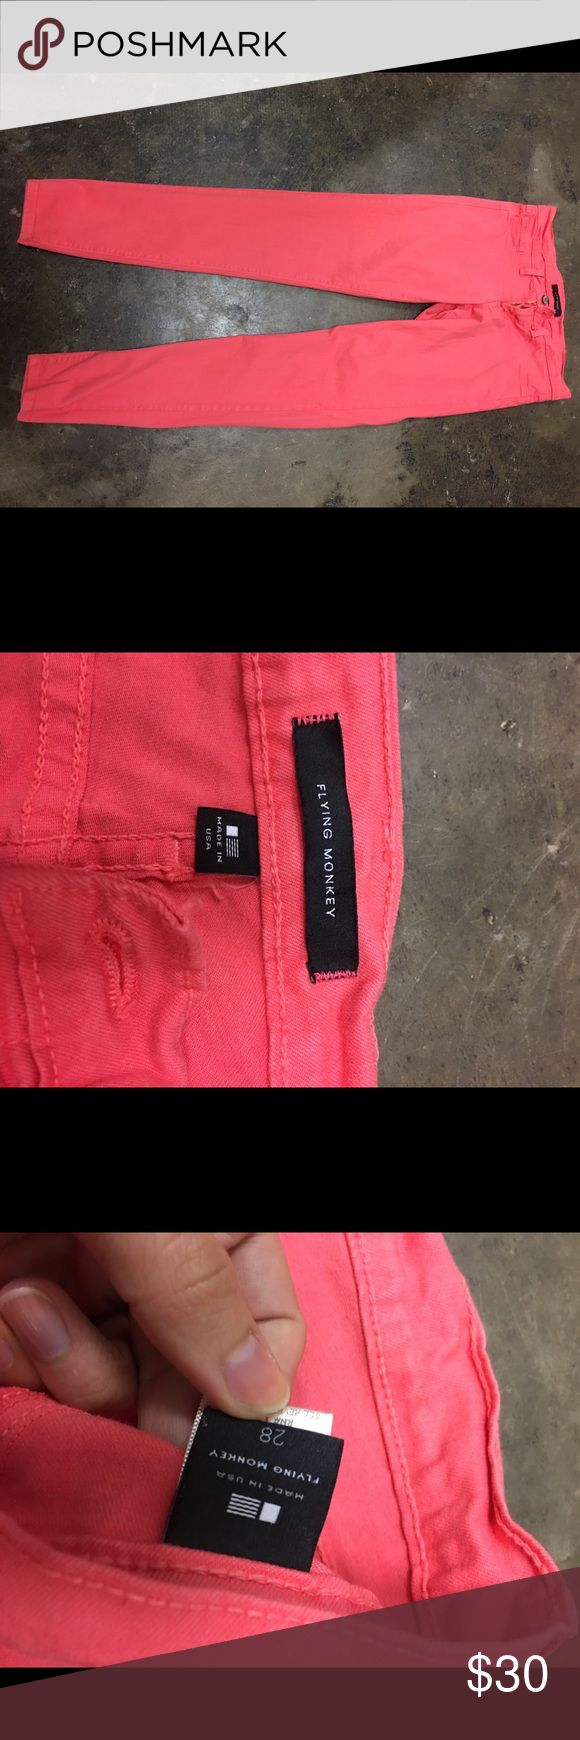 Coral pink high waisted skinny jeans Coral, high waisted, skinny jeans flying monkey Jeans Skinny